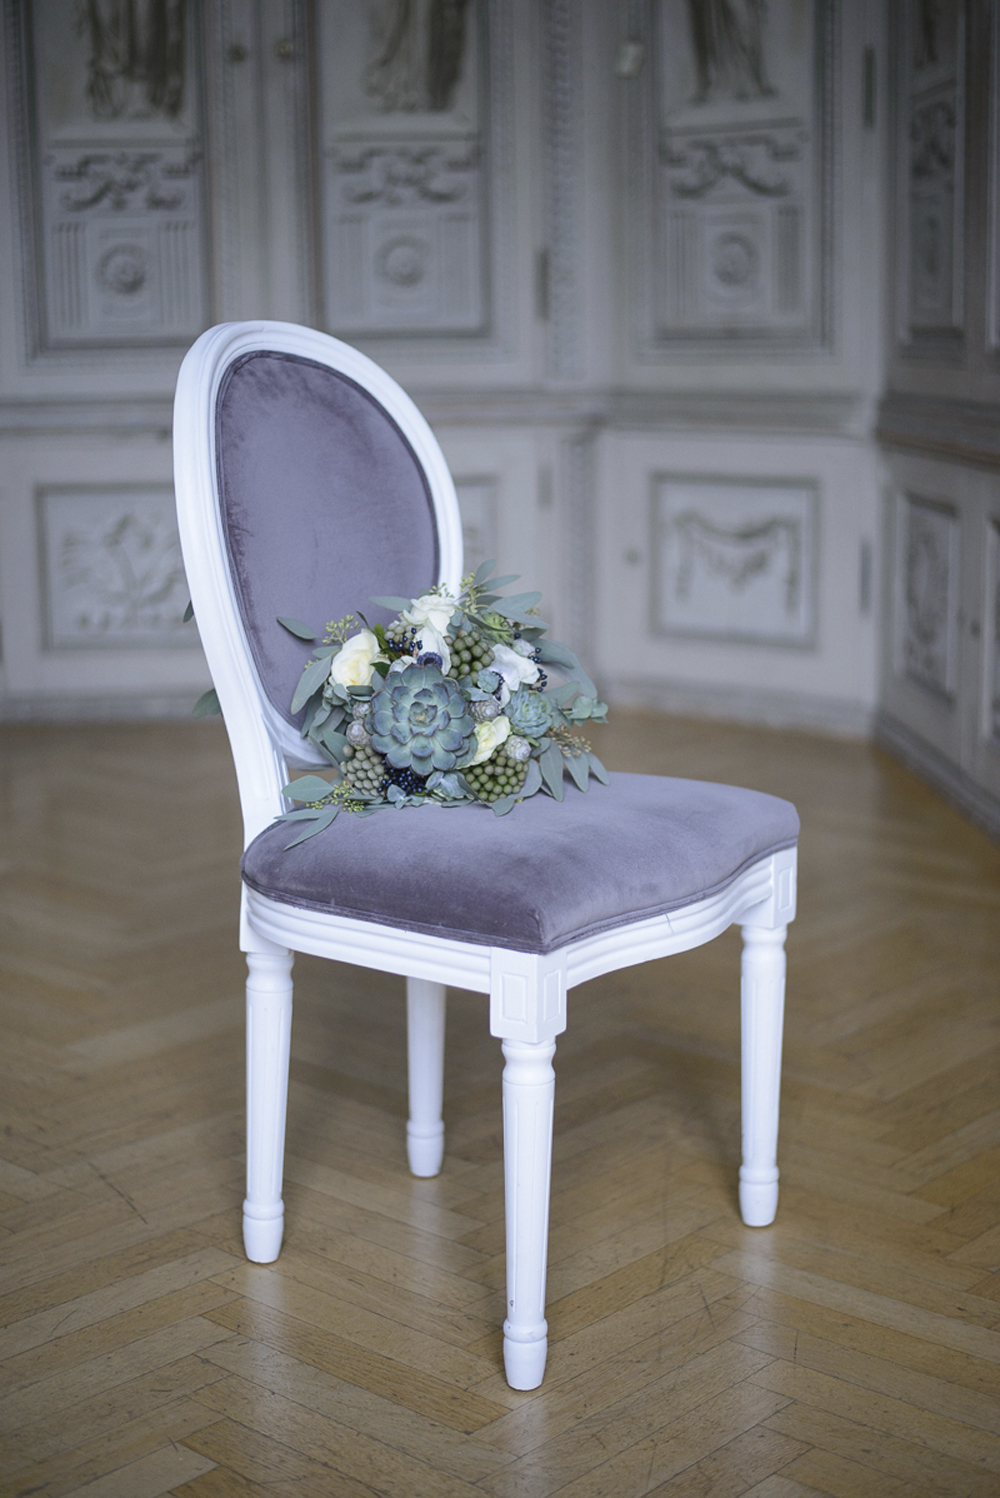 Wedding decoration inspiration in blue grey and silver at Schloss Laudon Vienna Austria by Barbara Wenz Photography